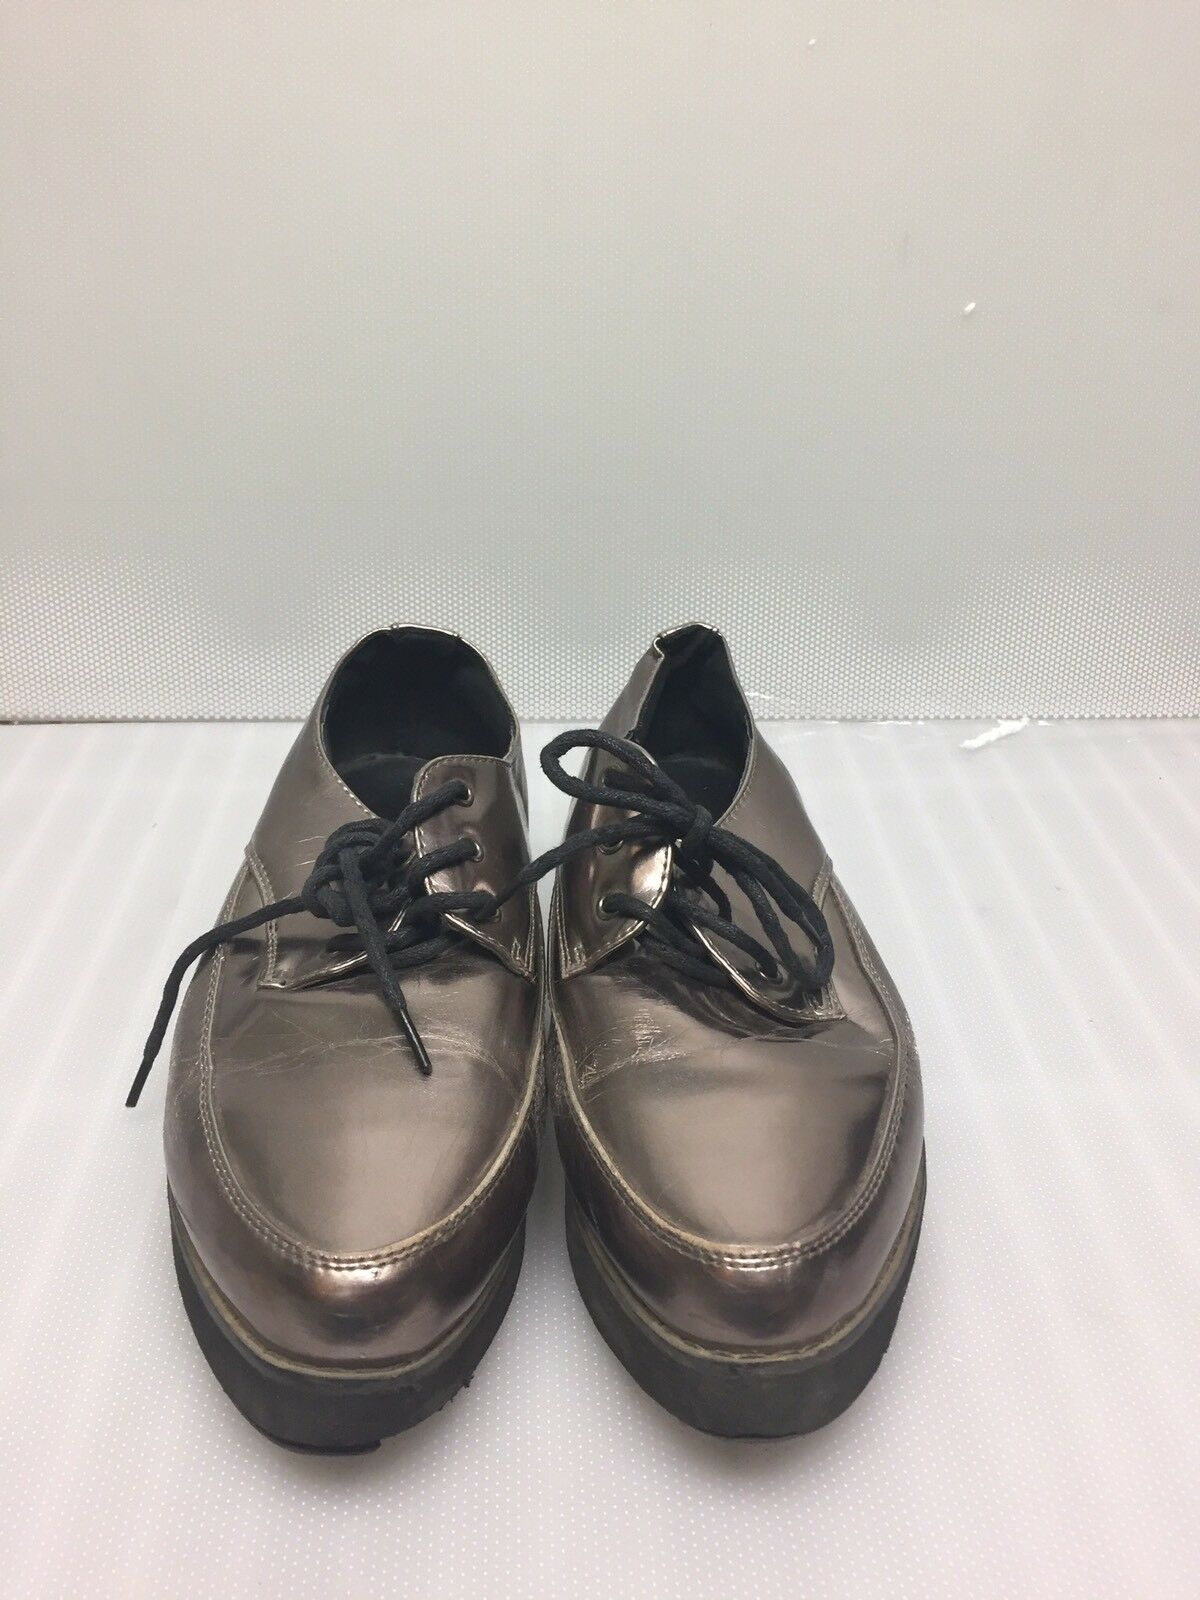 Lace up synthetic leather shiny gold bronze shoes size 6